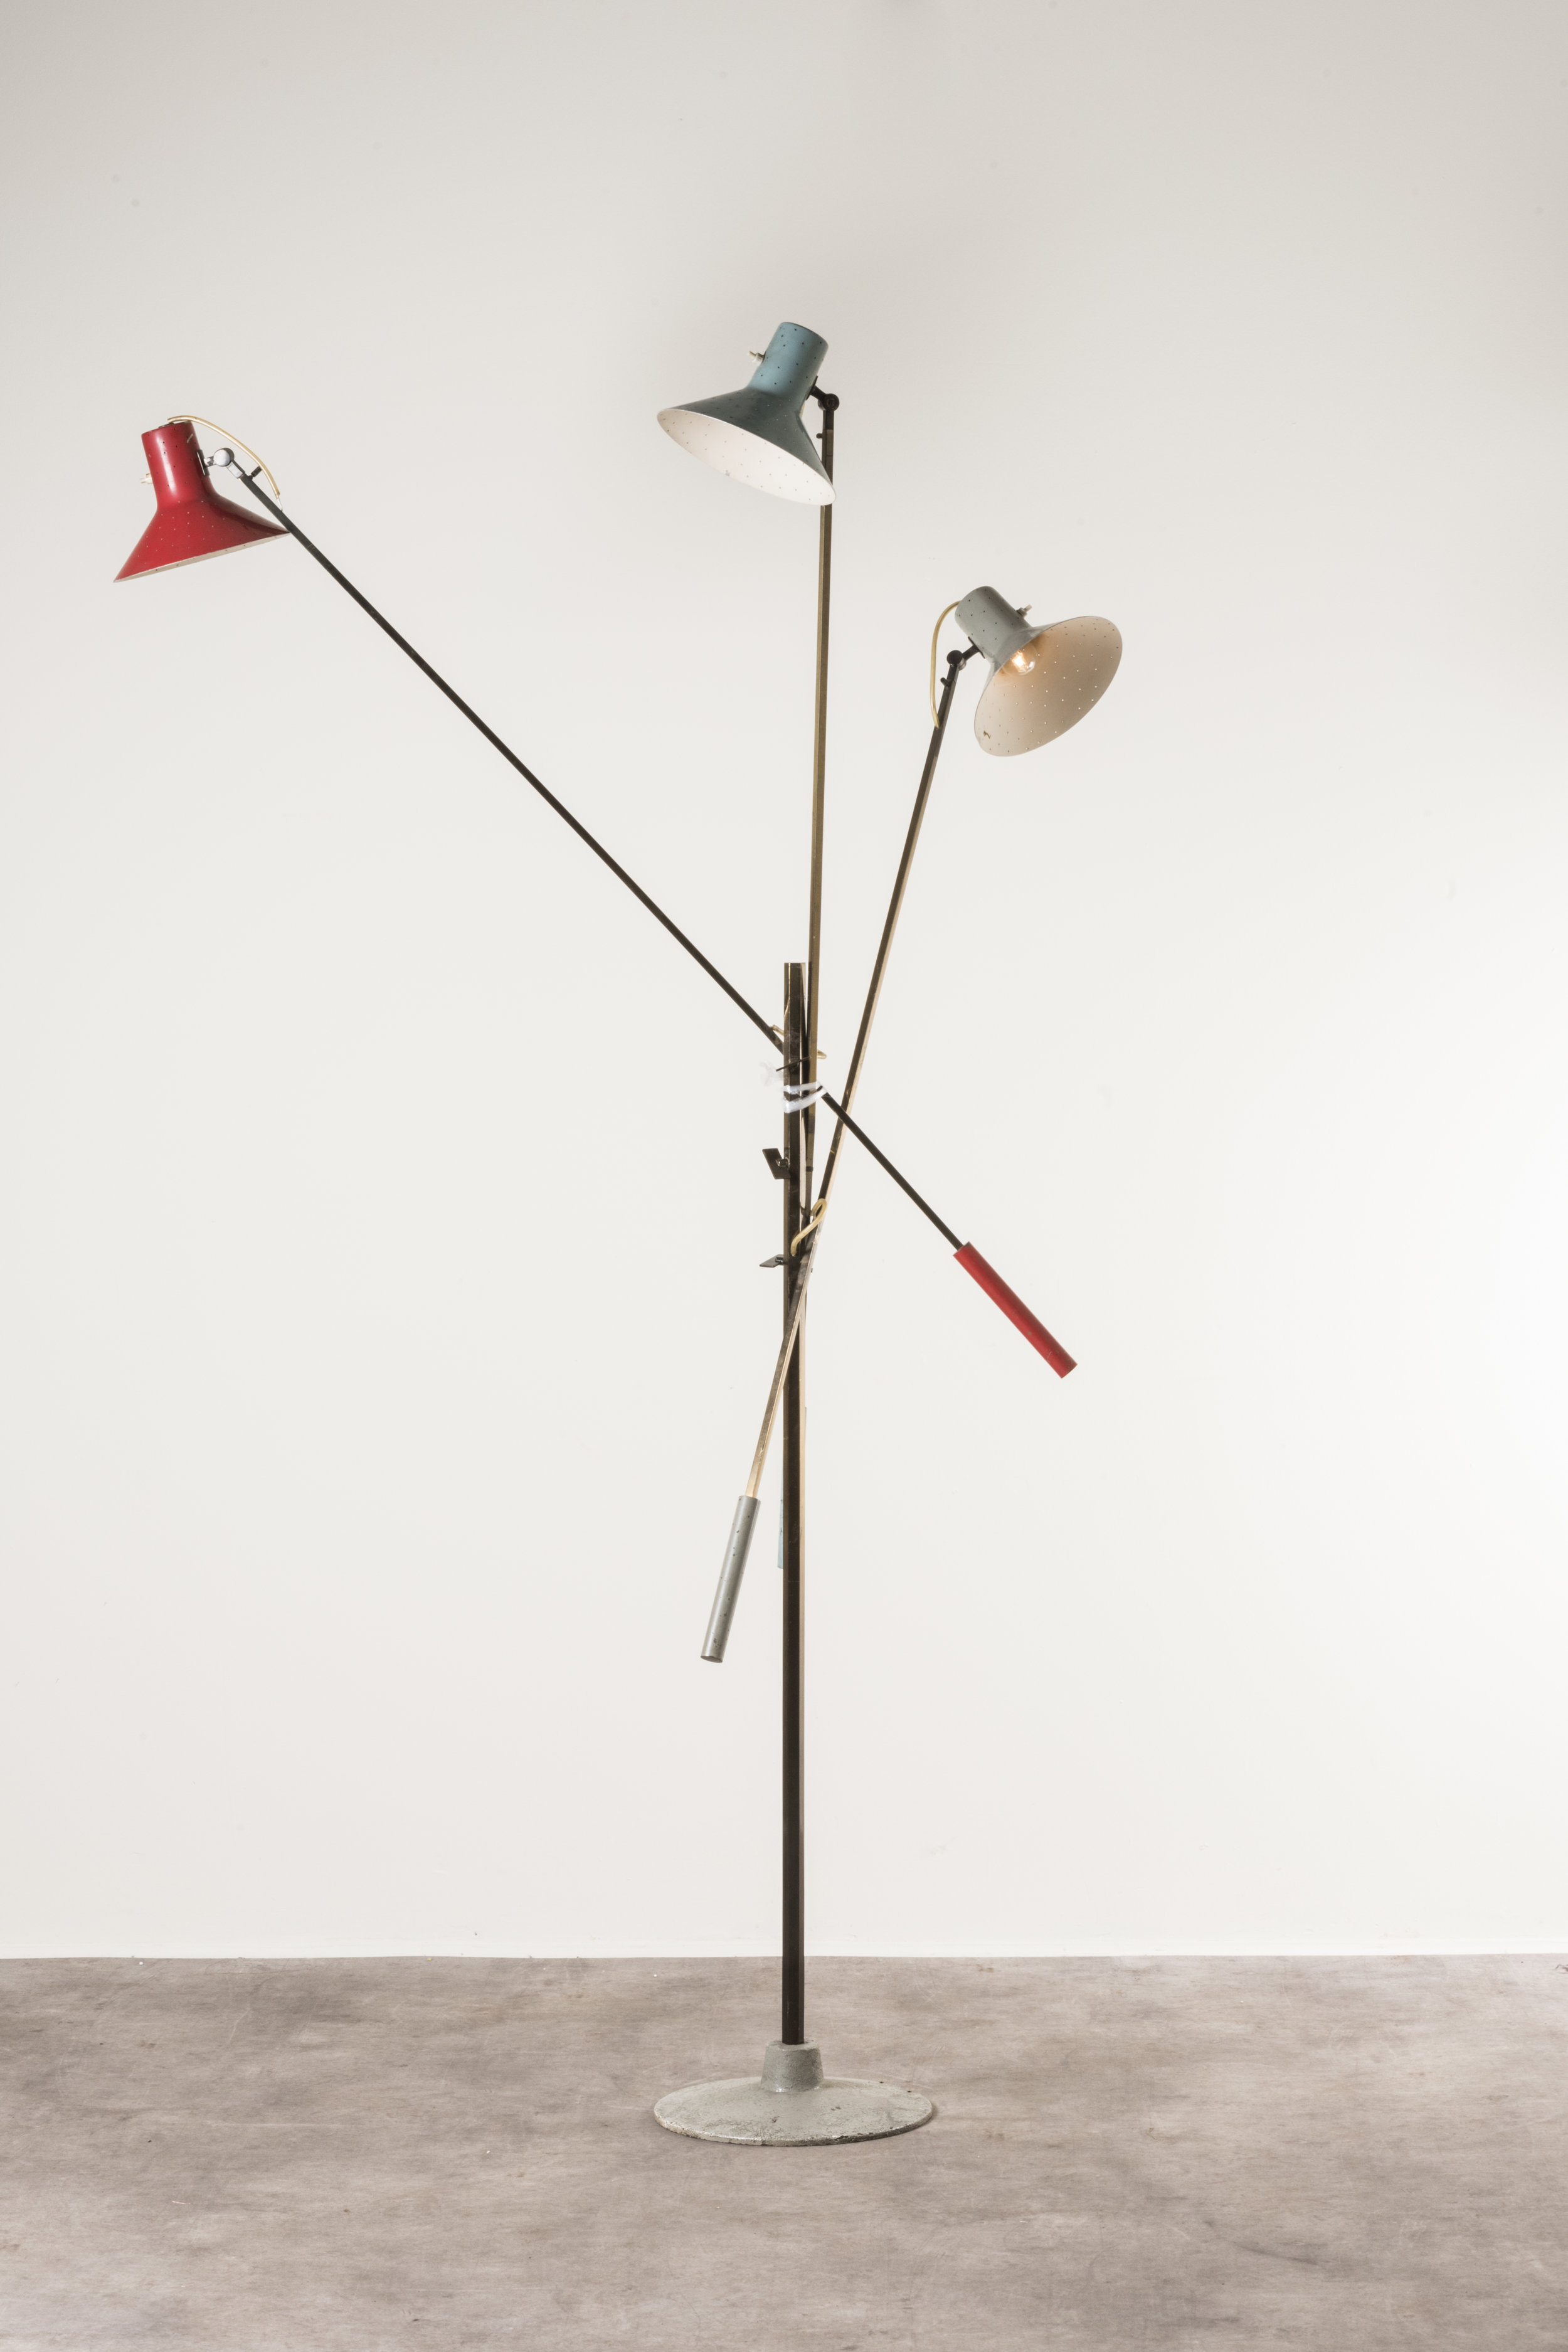 Tre bracci  floor lamp mod. 1052 Italy, 1951, on display at Nilufar stand, Design Miami 2018  Design: Gino Sarfatti Manufactured and signed by Arteluce Painted cast iron, polished and painted brass, laquered aluminium Size: h 210 cm, h 82.7 in  ⓒ Nilufar Gallery